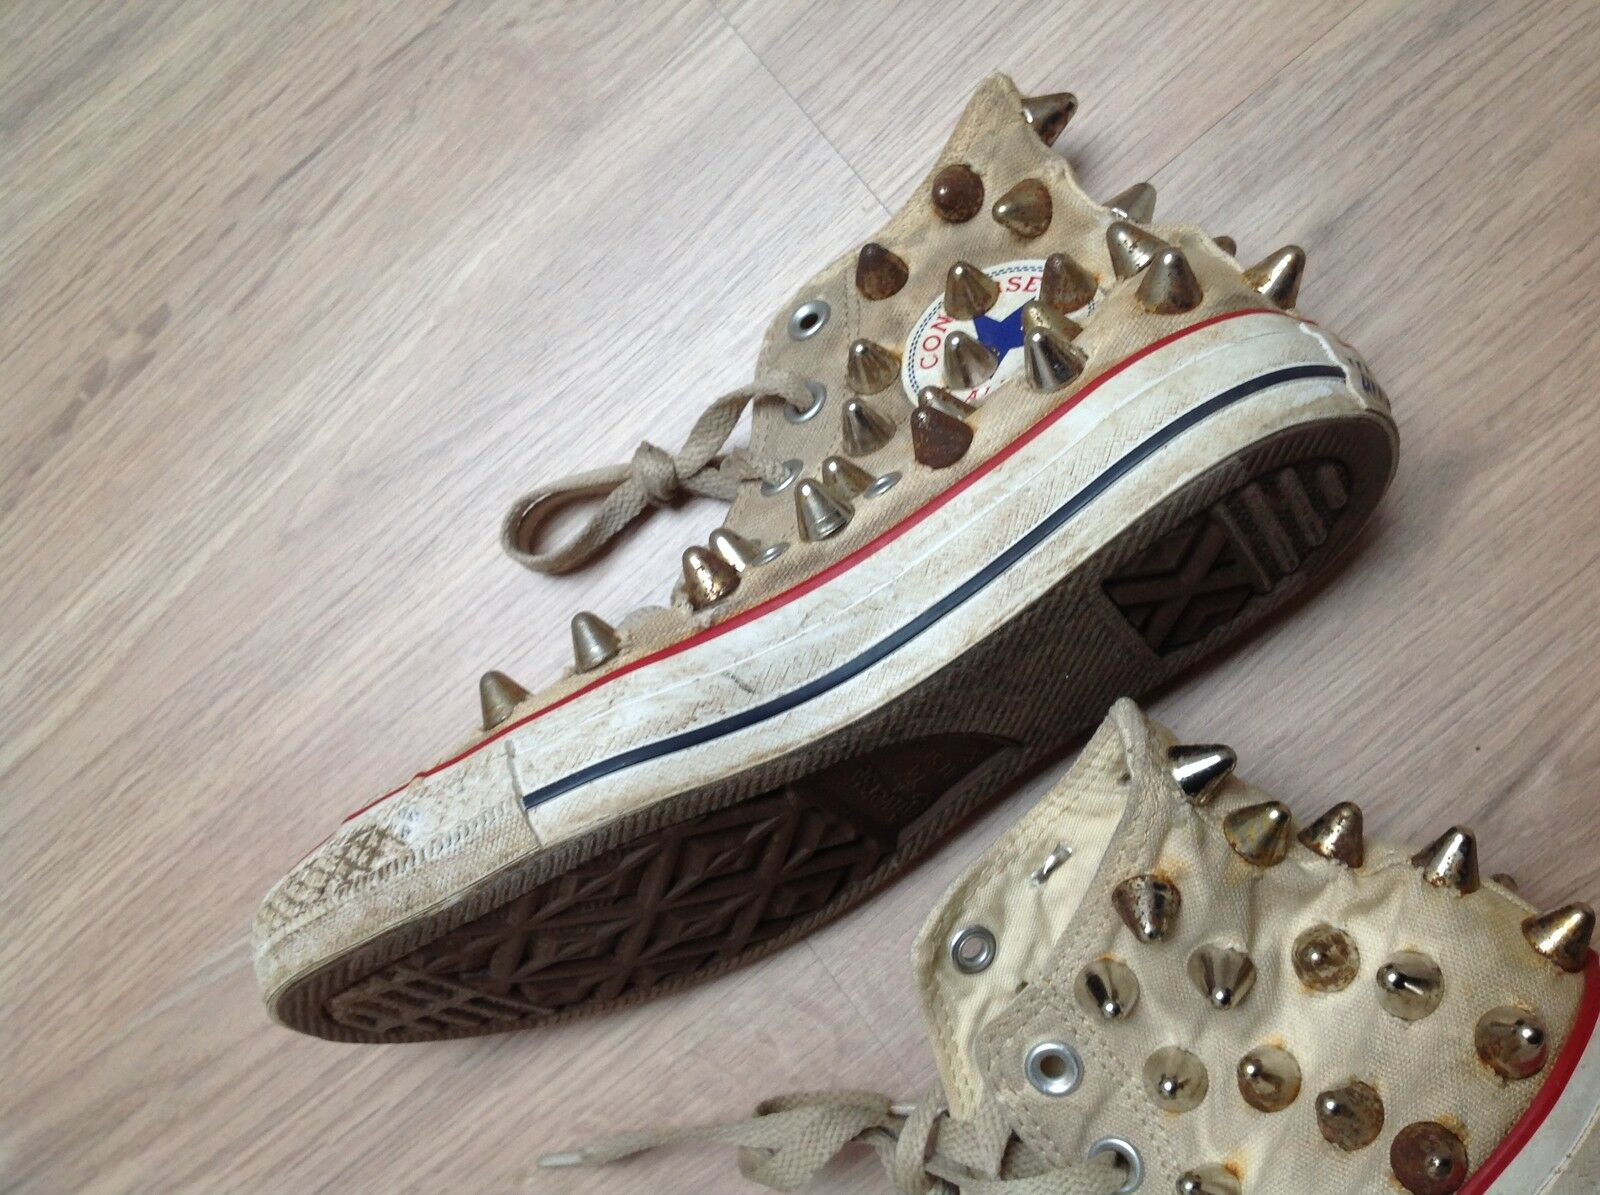 Converse ALL STAR USED LOOK LOOK LOOK mit NIETEN - LIMITED EDITION sehr gut - grösse 37,5  | Moderater Preis  9bde7a